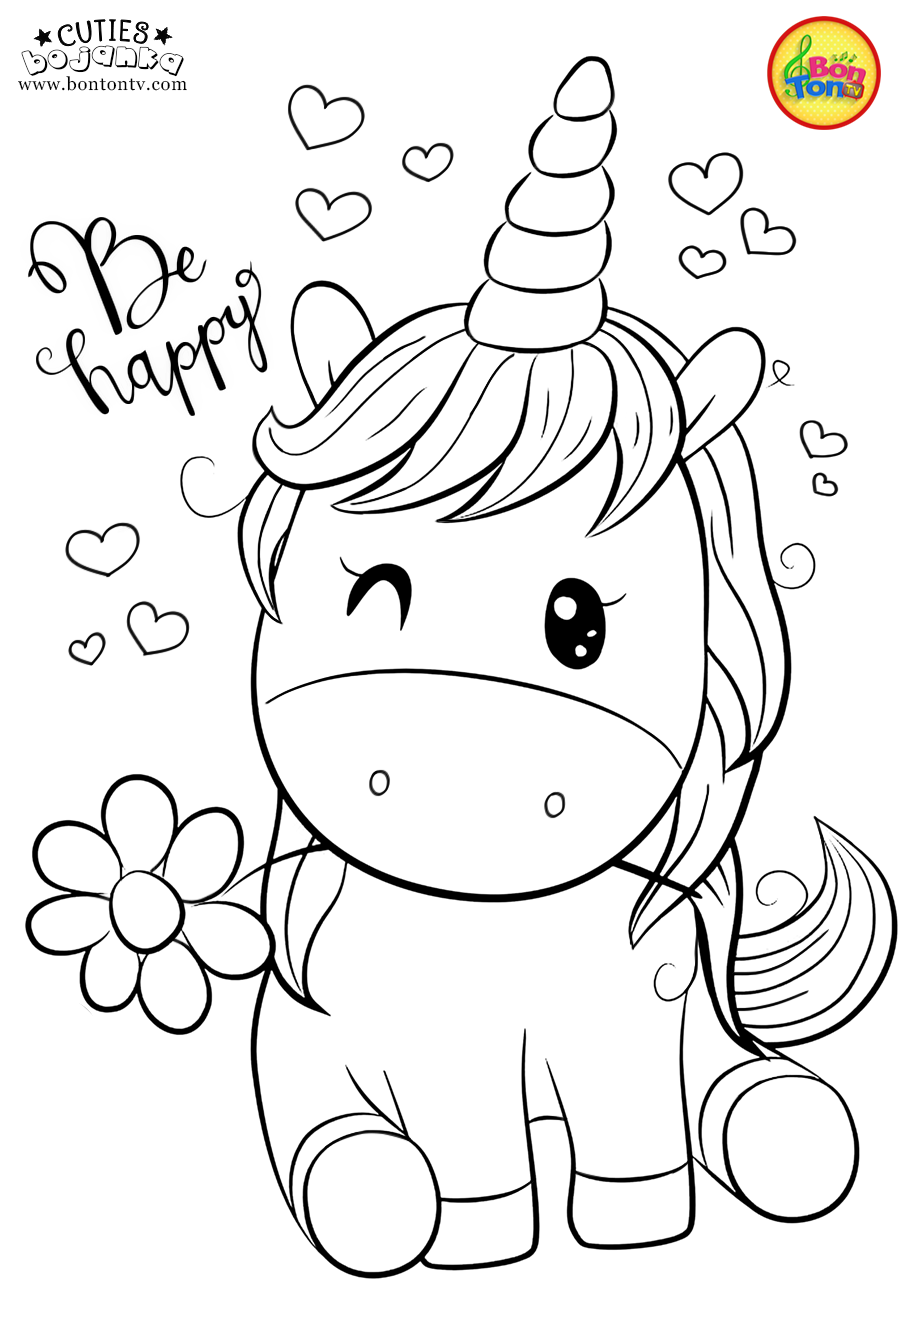 Cuties Coloring Pages For Kids Free Preschool Printables Slatkice Bojanke Cute Anim Preschool Coloring Pages Unicorn Coloring Pages Animal Coloring Books